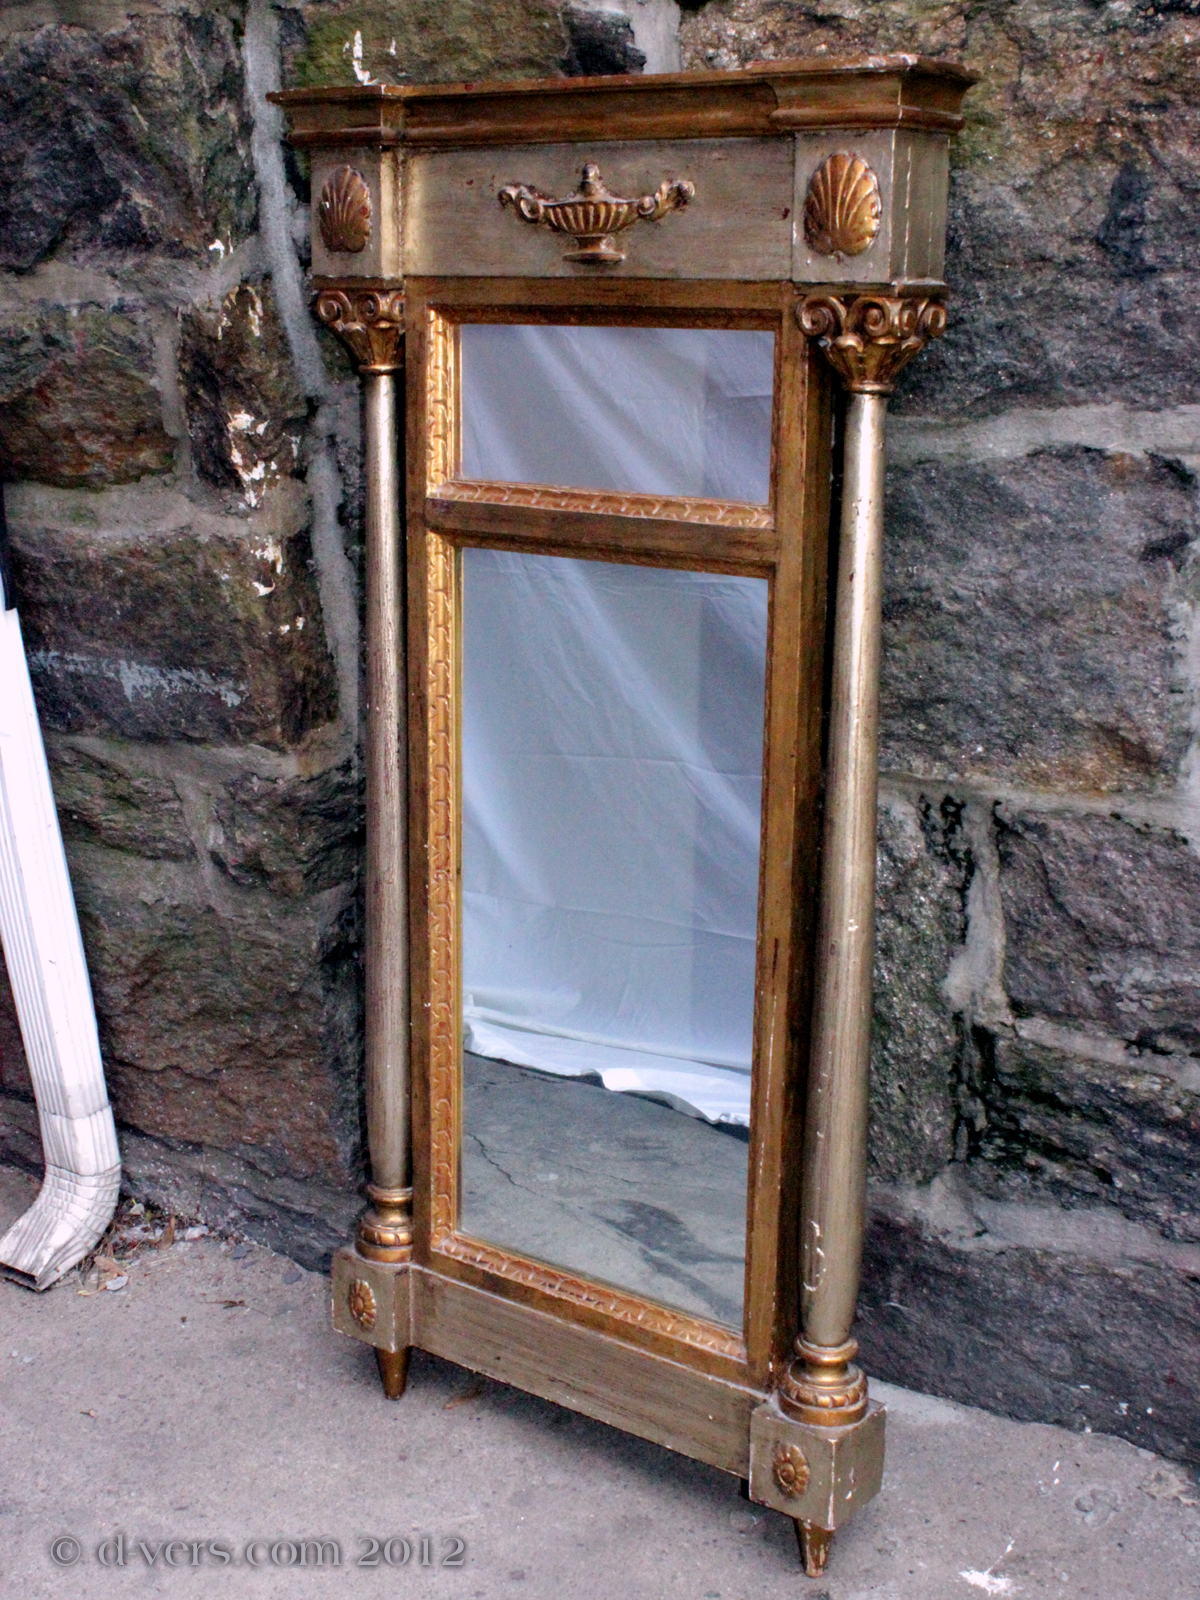 Antique Mirror from the 1800s with Aladdin Lamp